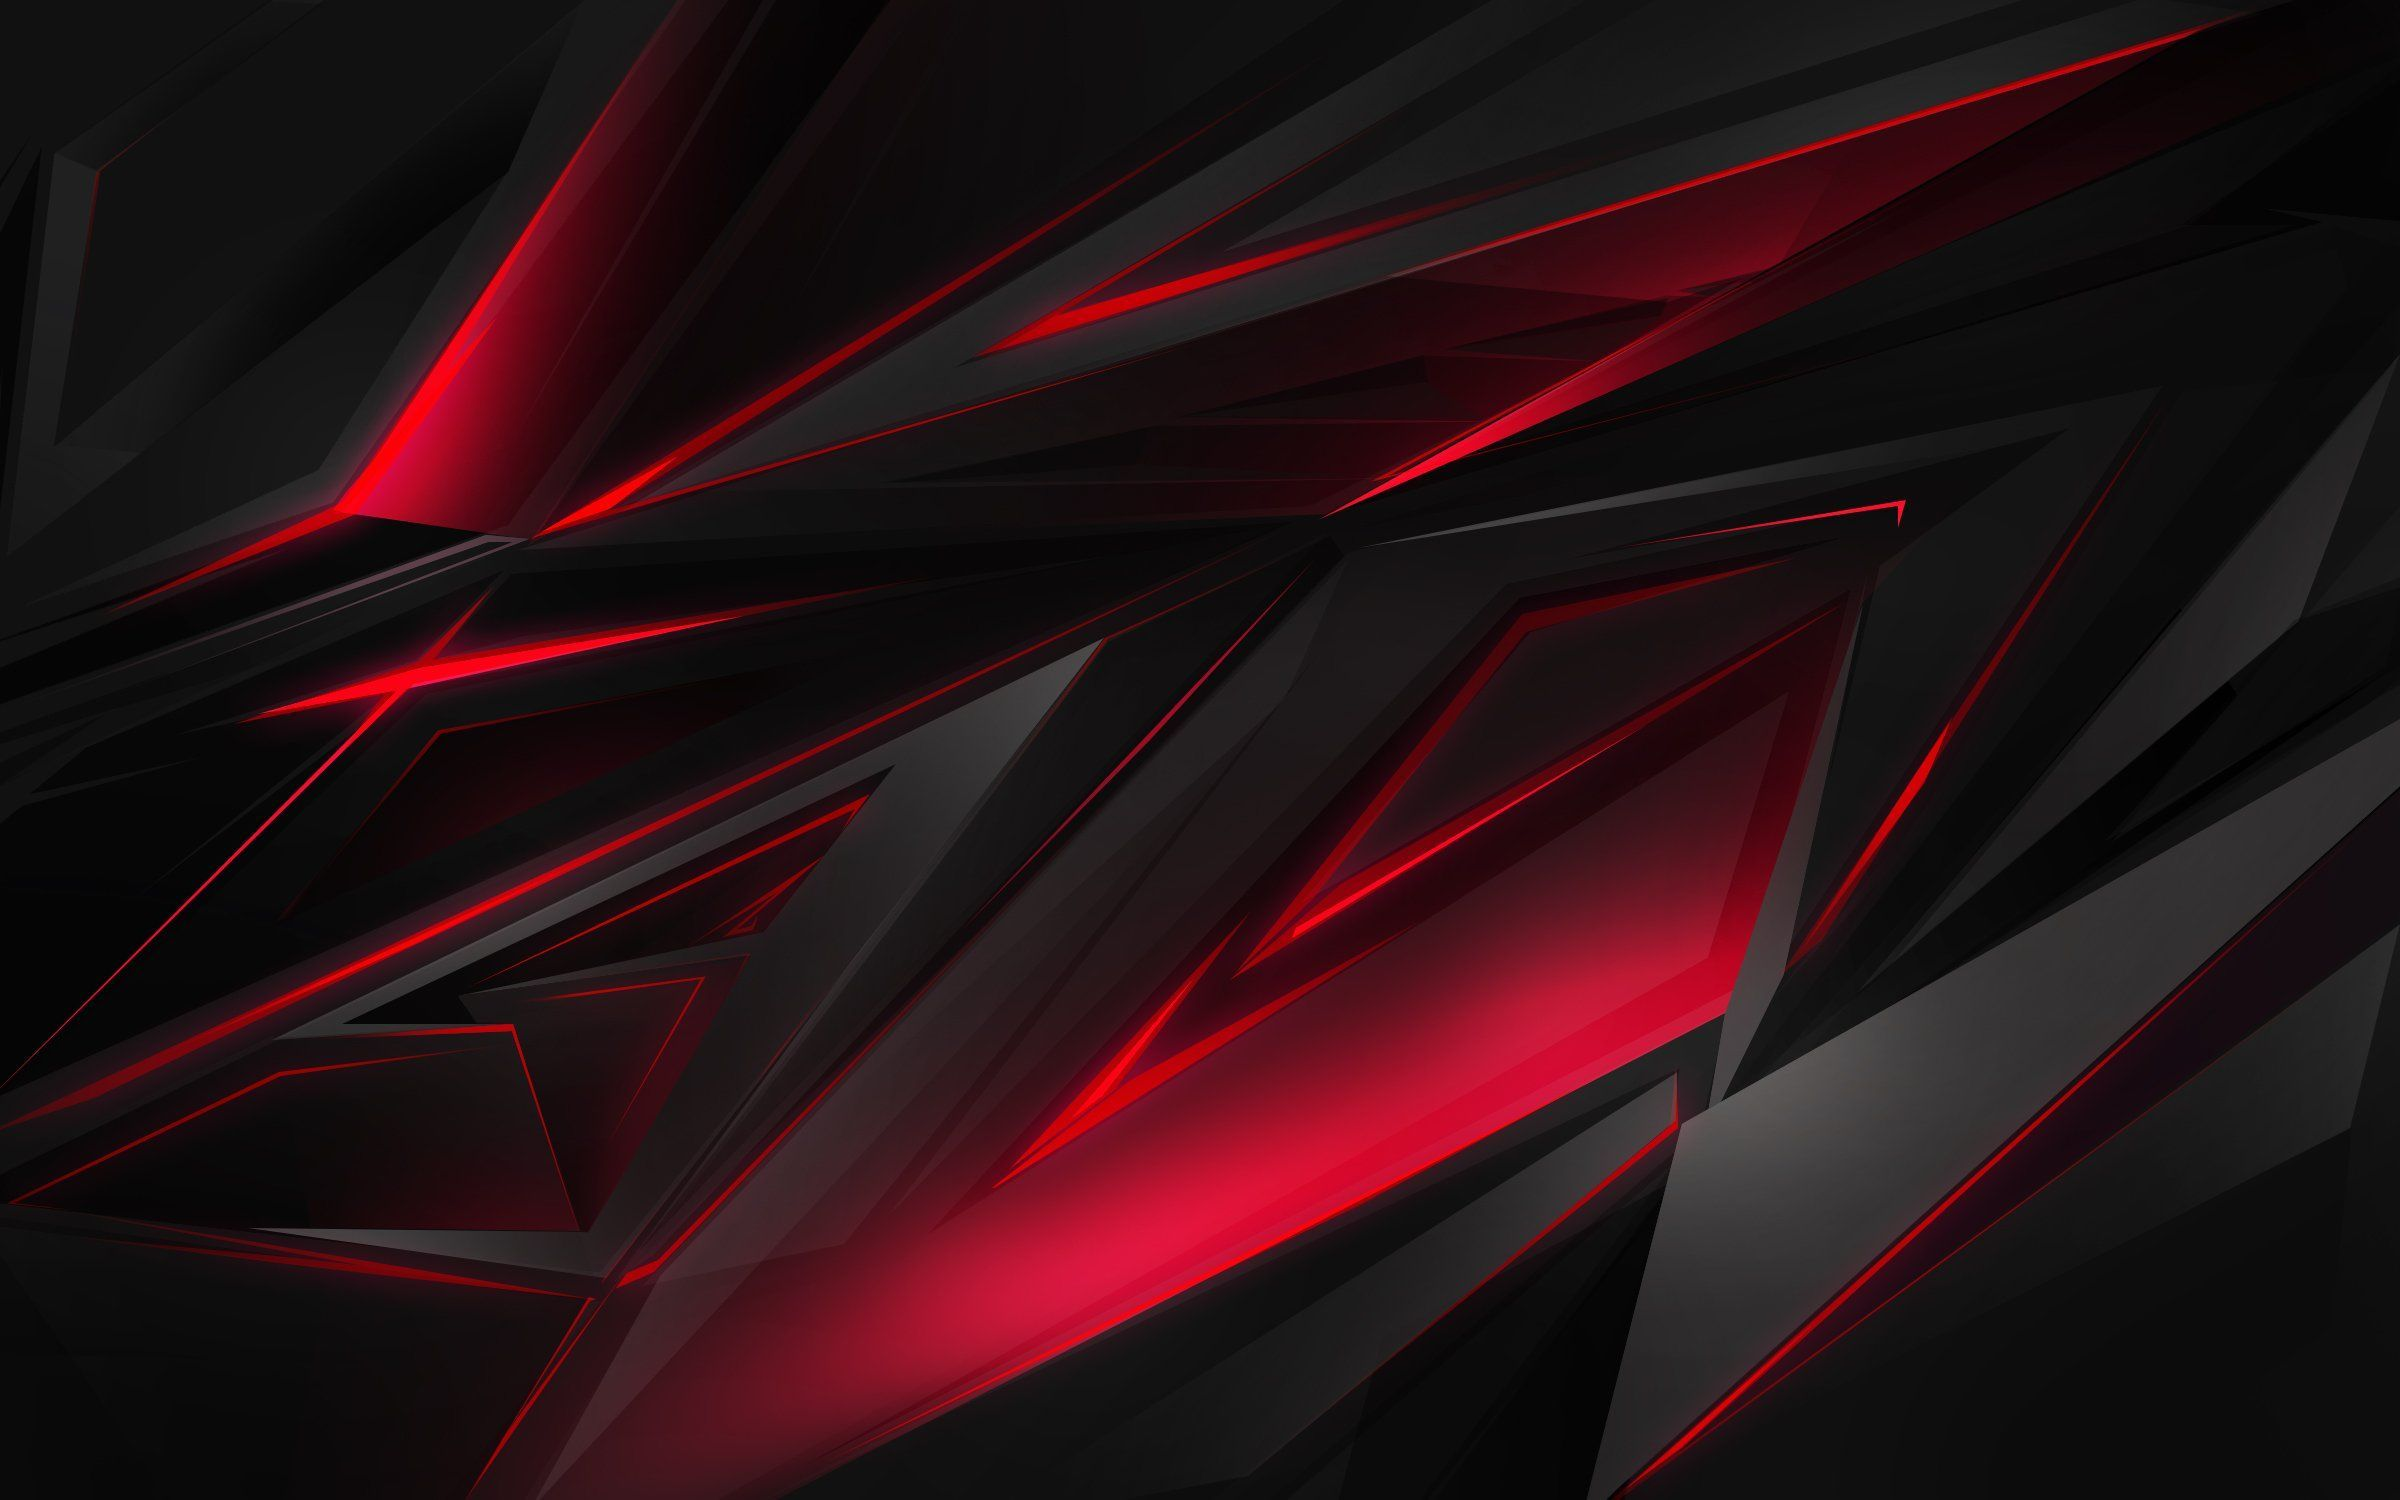 Black Red Shards Wallpapers - Top Free Black Red Shards Backgrounds -  WallpaperAccess